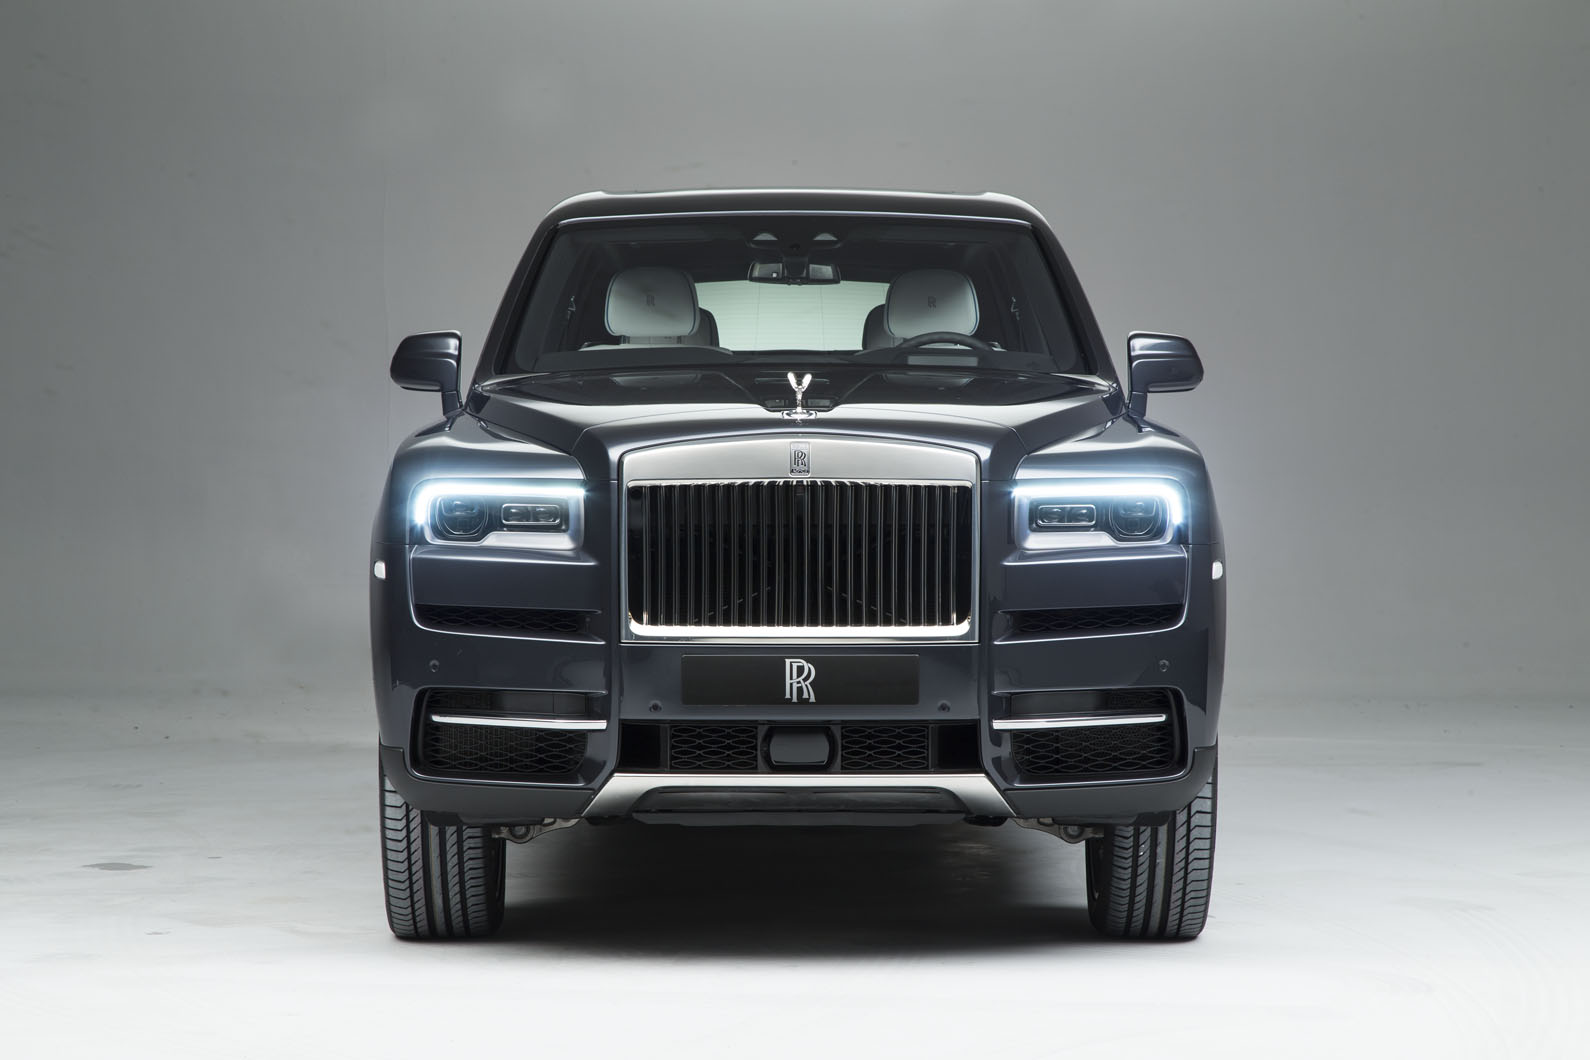 2019 Rolls Royce Cullinan: Design, Powertrain, Release >> Rolls Royce Cullinan Revealed Exclusive Pictures Of Luxury